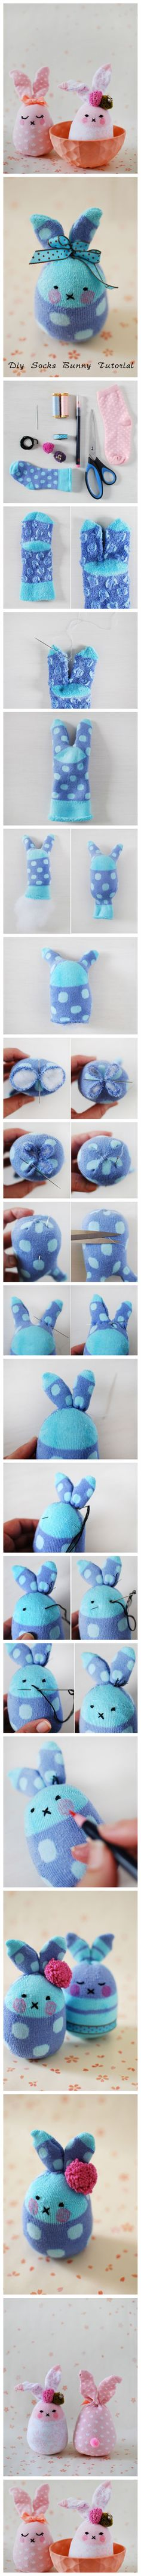 #Diy #Socks #Bunny #Tutorial